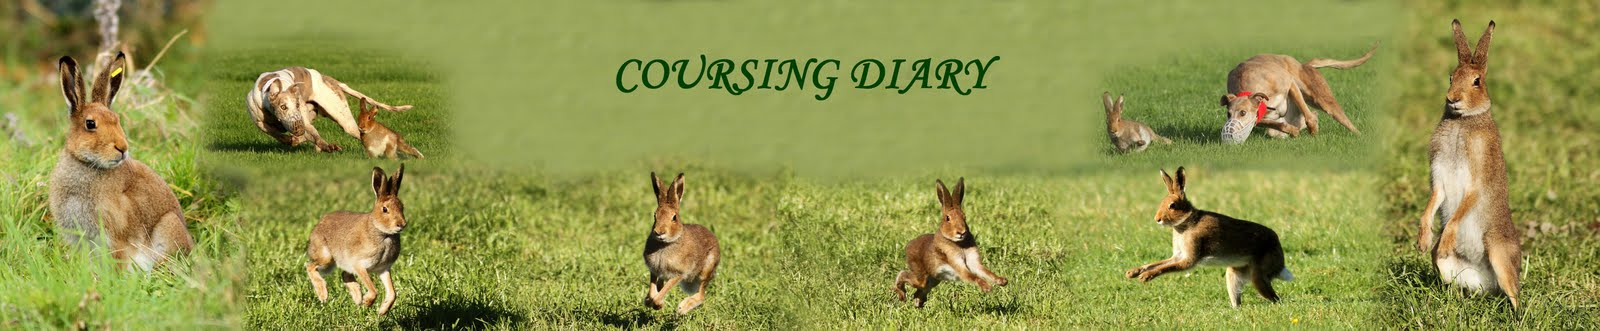 COURSING DIARY